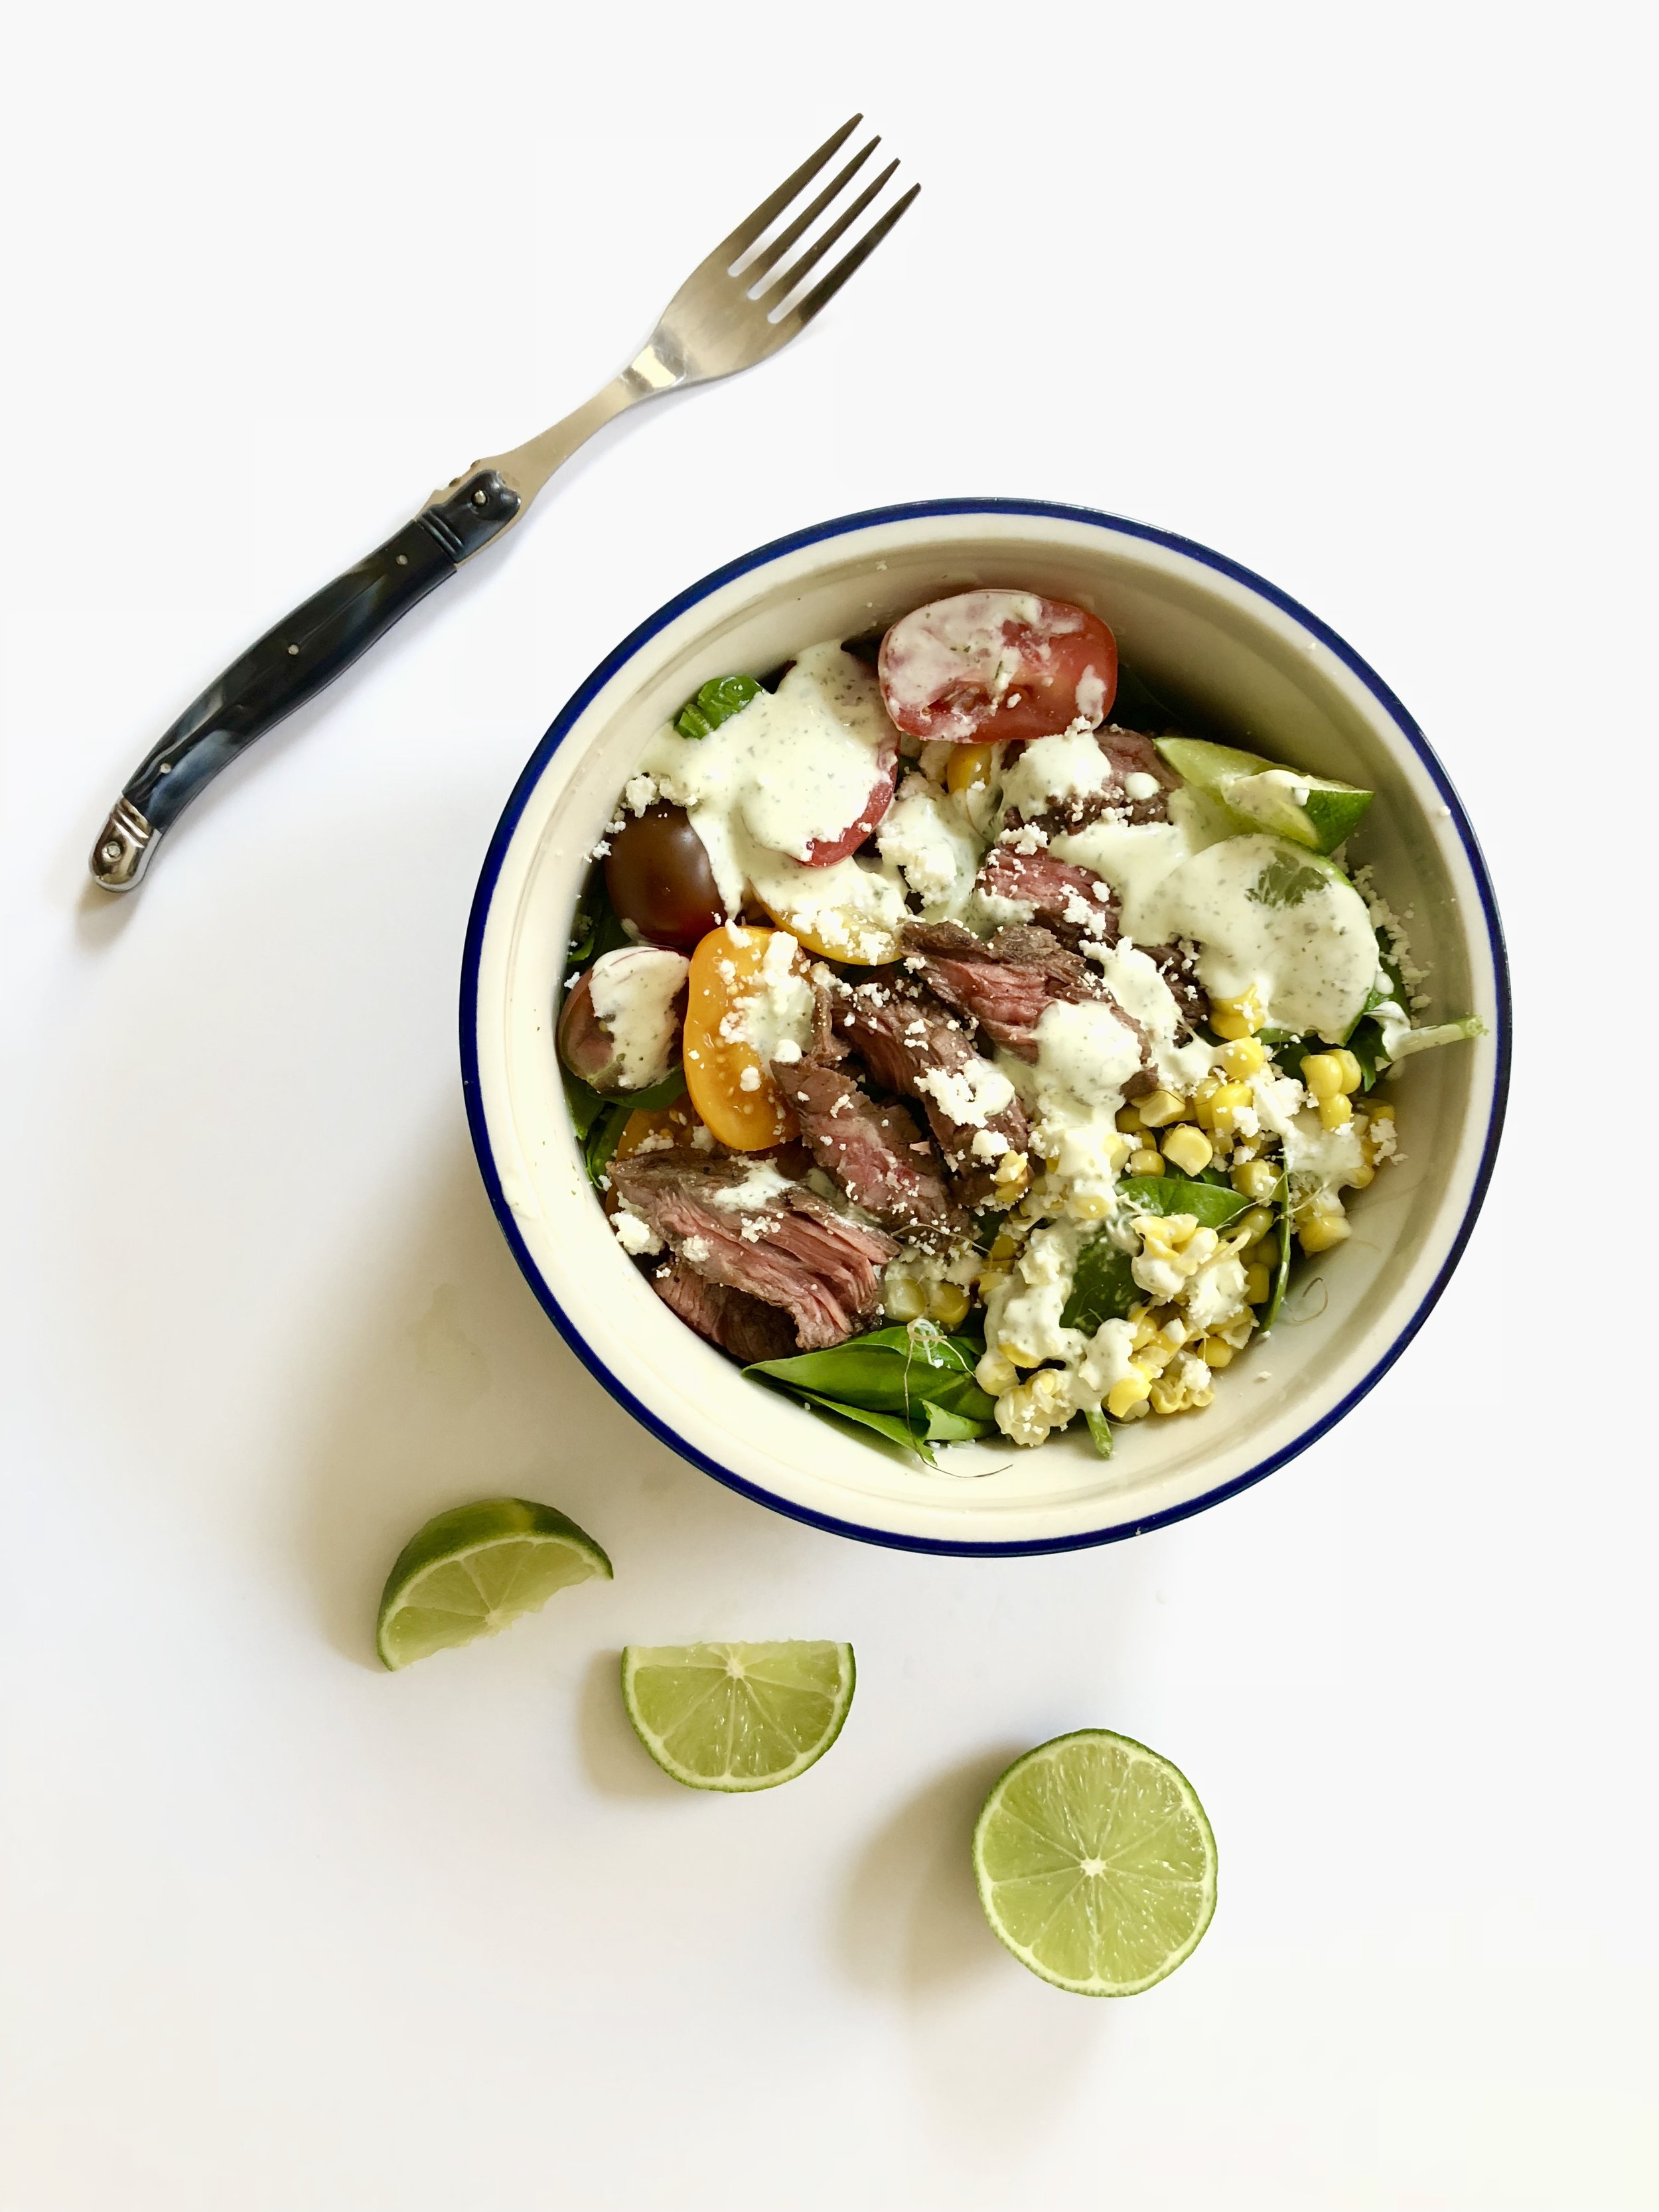 Sous Vide Chipotle-Infused Flap Steak Dinner Salad